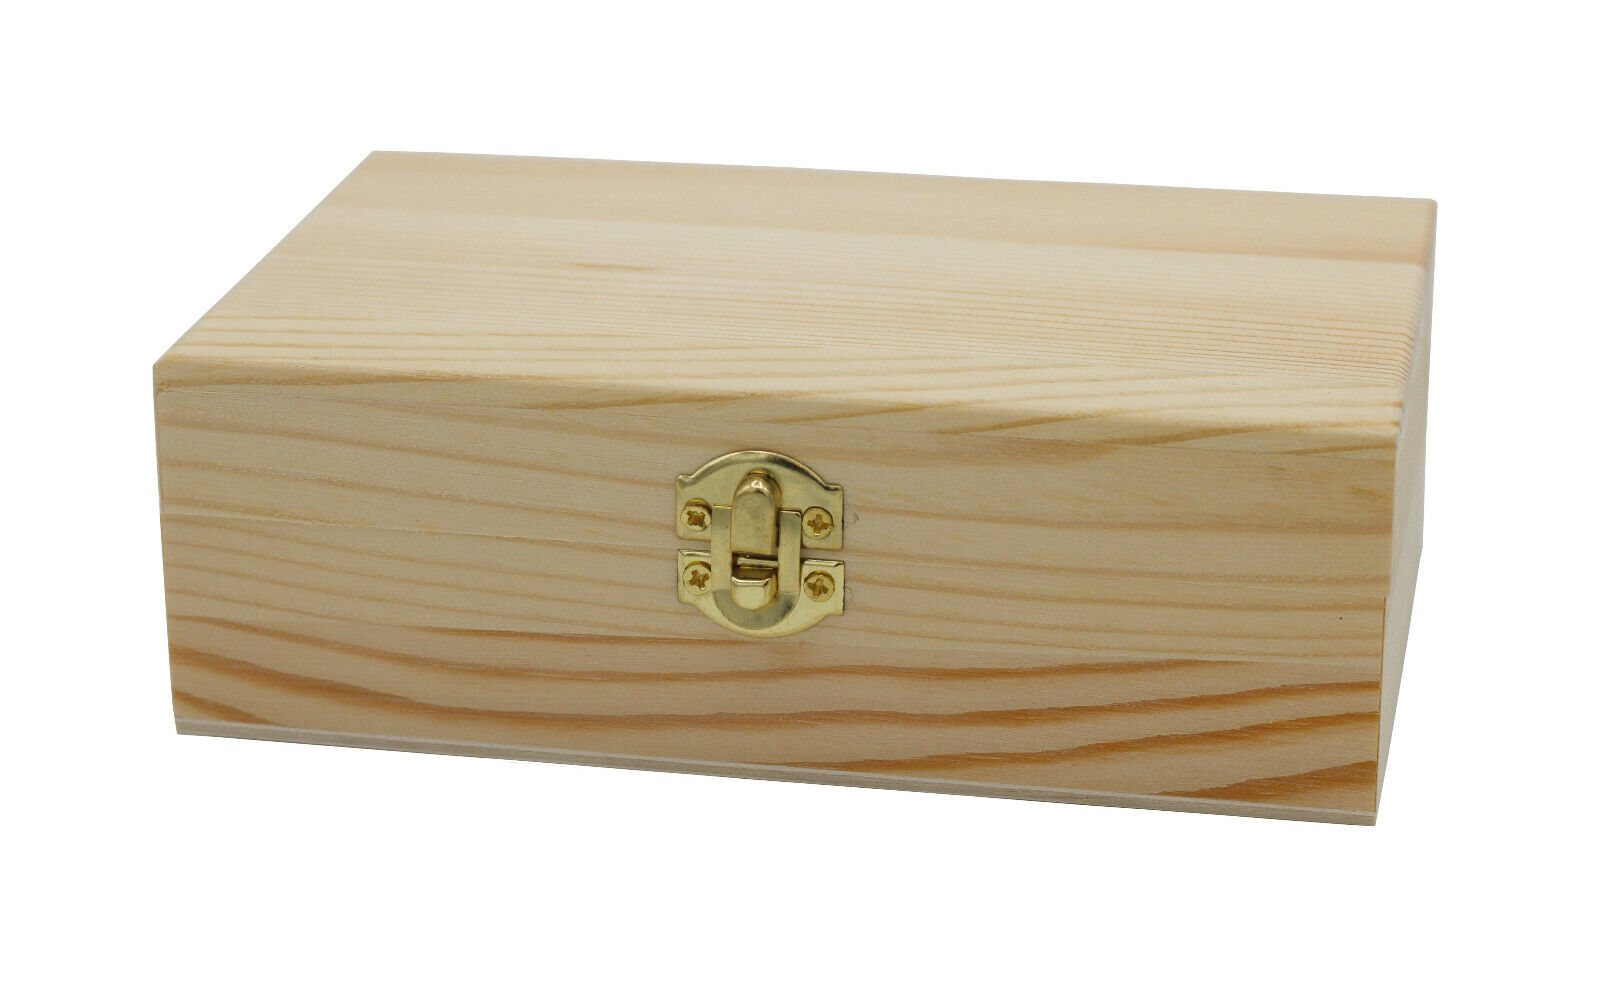 Unfinished Wood Craft Box – Light Unfinished Wood with Clasp 6″ x 4″ x 2″ Collectibles